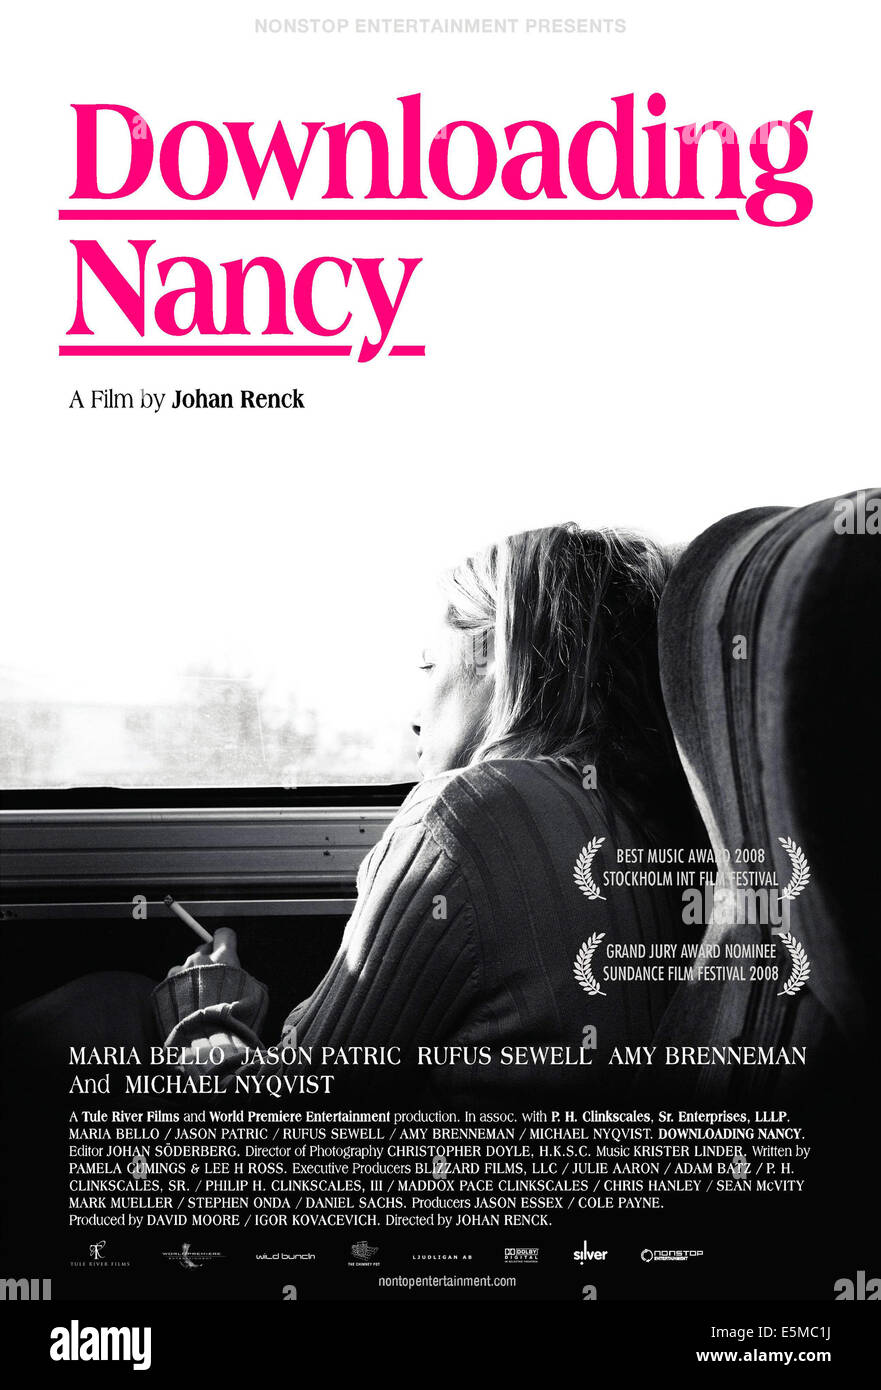 Poster Strand Downloading Nancy Swedish Poster Art Maria Bello 2008 Strand